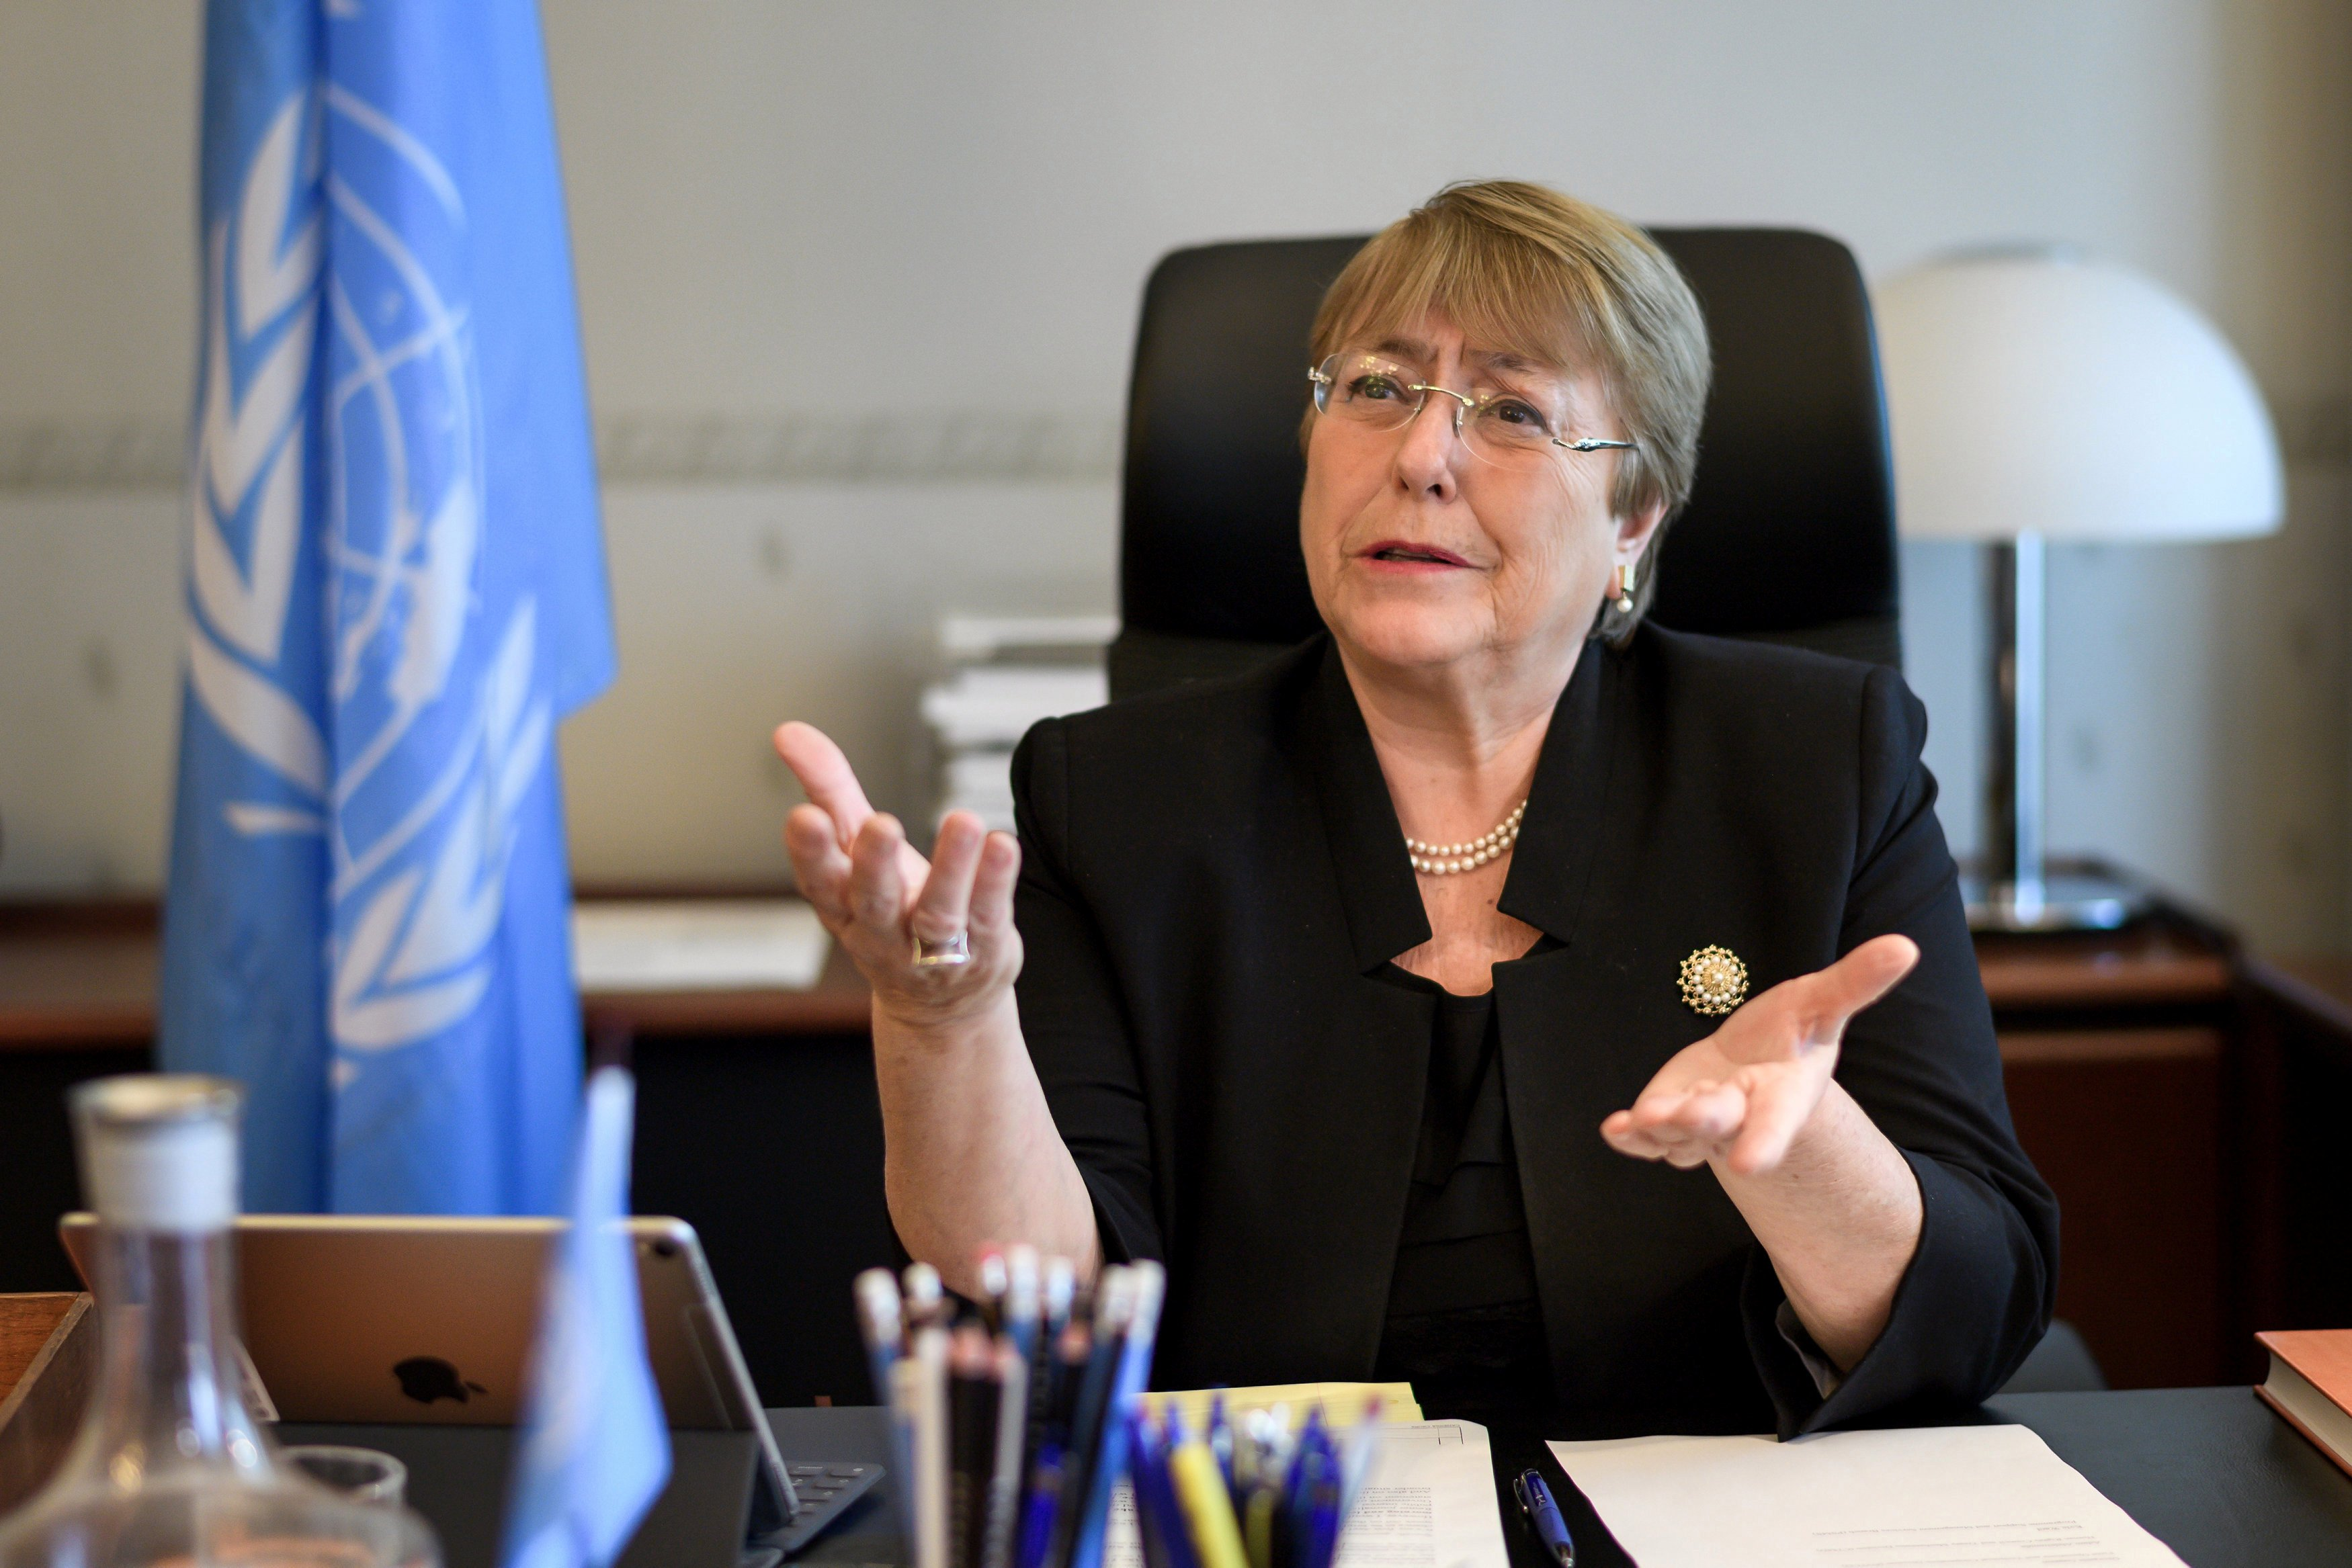 Former Chilean president Michelle Bachelet speaks from her office at the Palais Wilson on her first day as new United Nations (UN) High Commissioner for Human Rights in Geneva, Switzerland, September 3, 2018.  Fabrice Coffrini/Pool via REUTERS